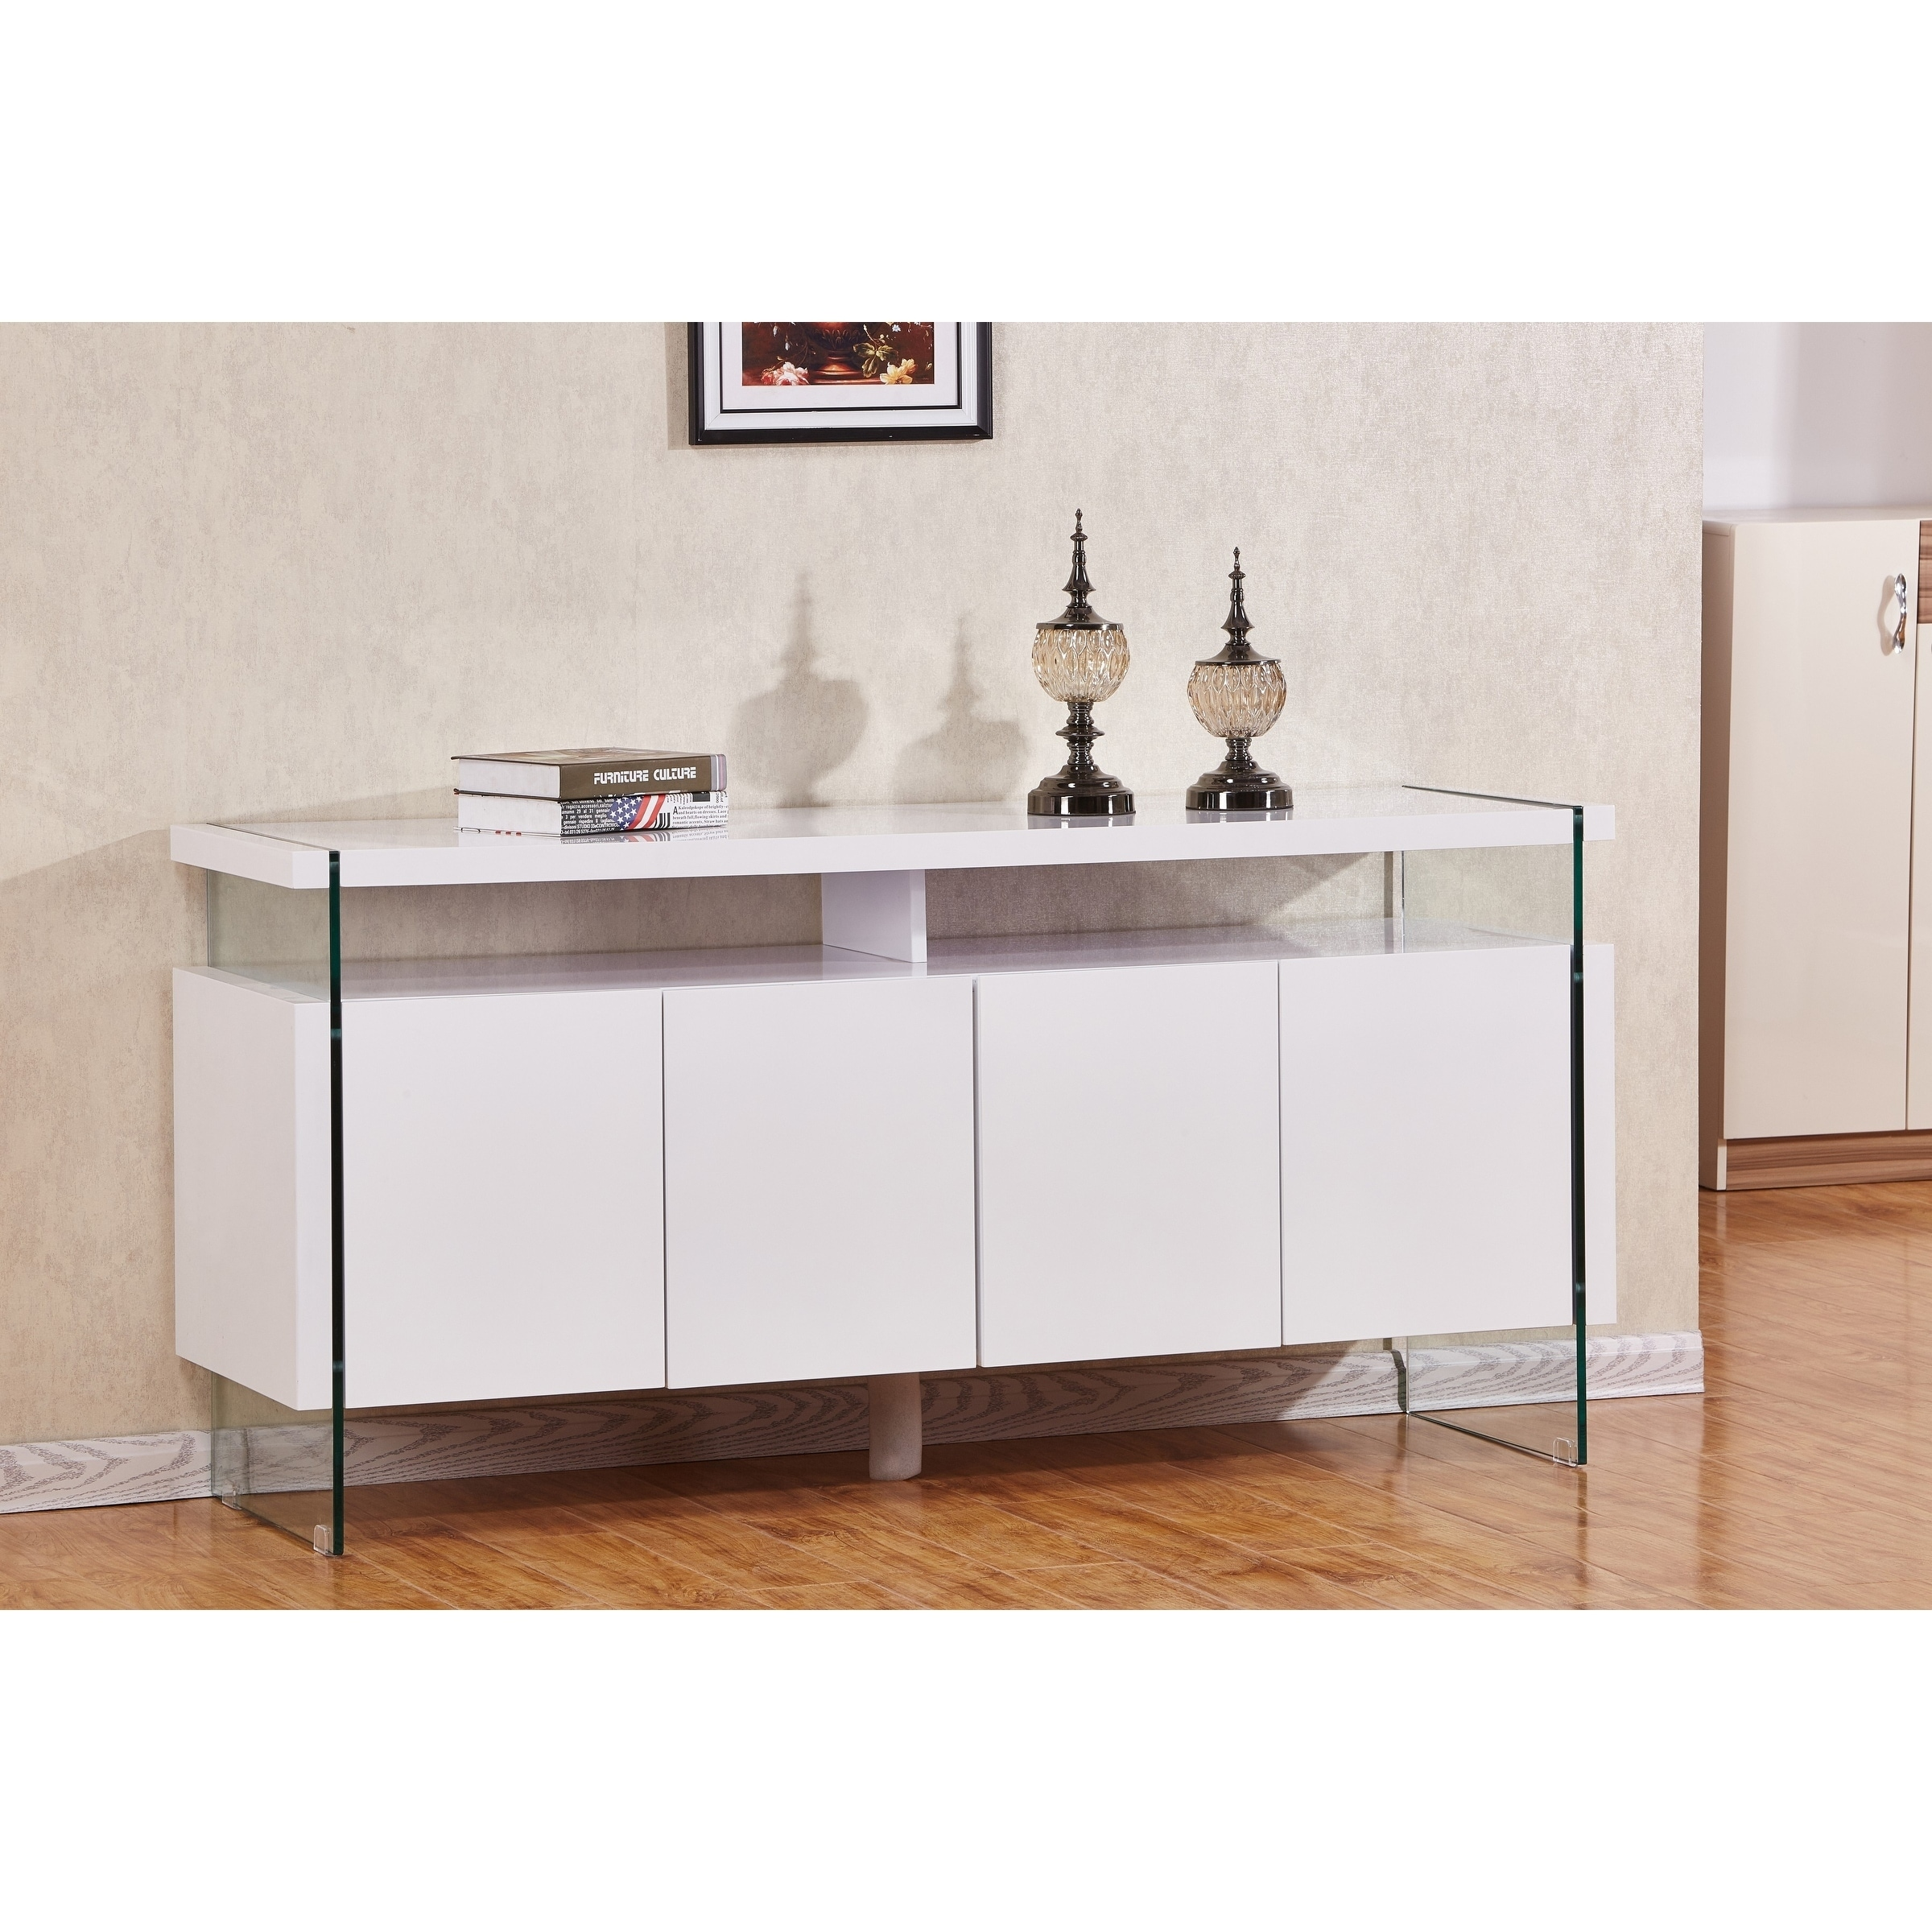 Shop Best Quality Furniture 4 Door Lacquer Buffet Server   Free Shipping  Today   Overstock.com   17695569